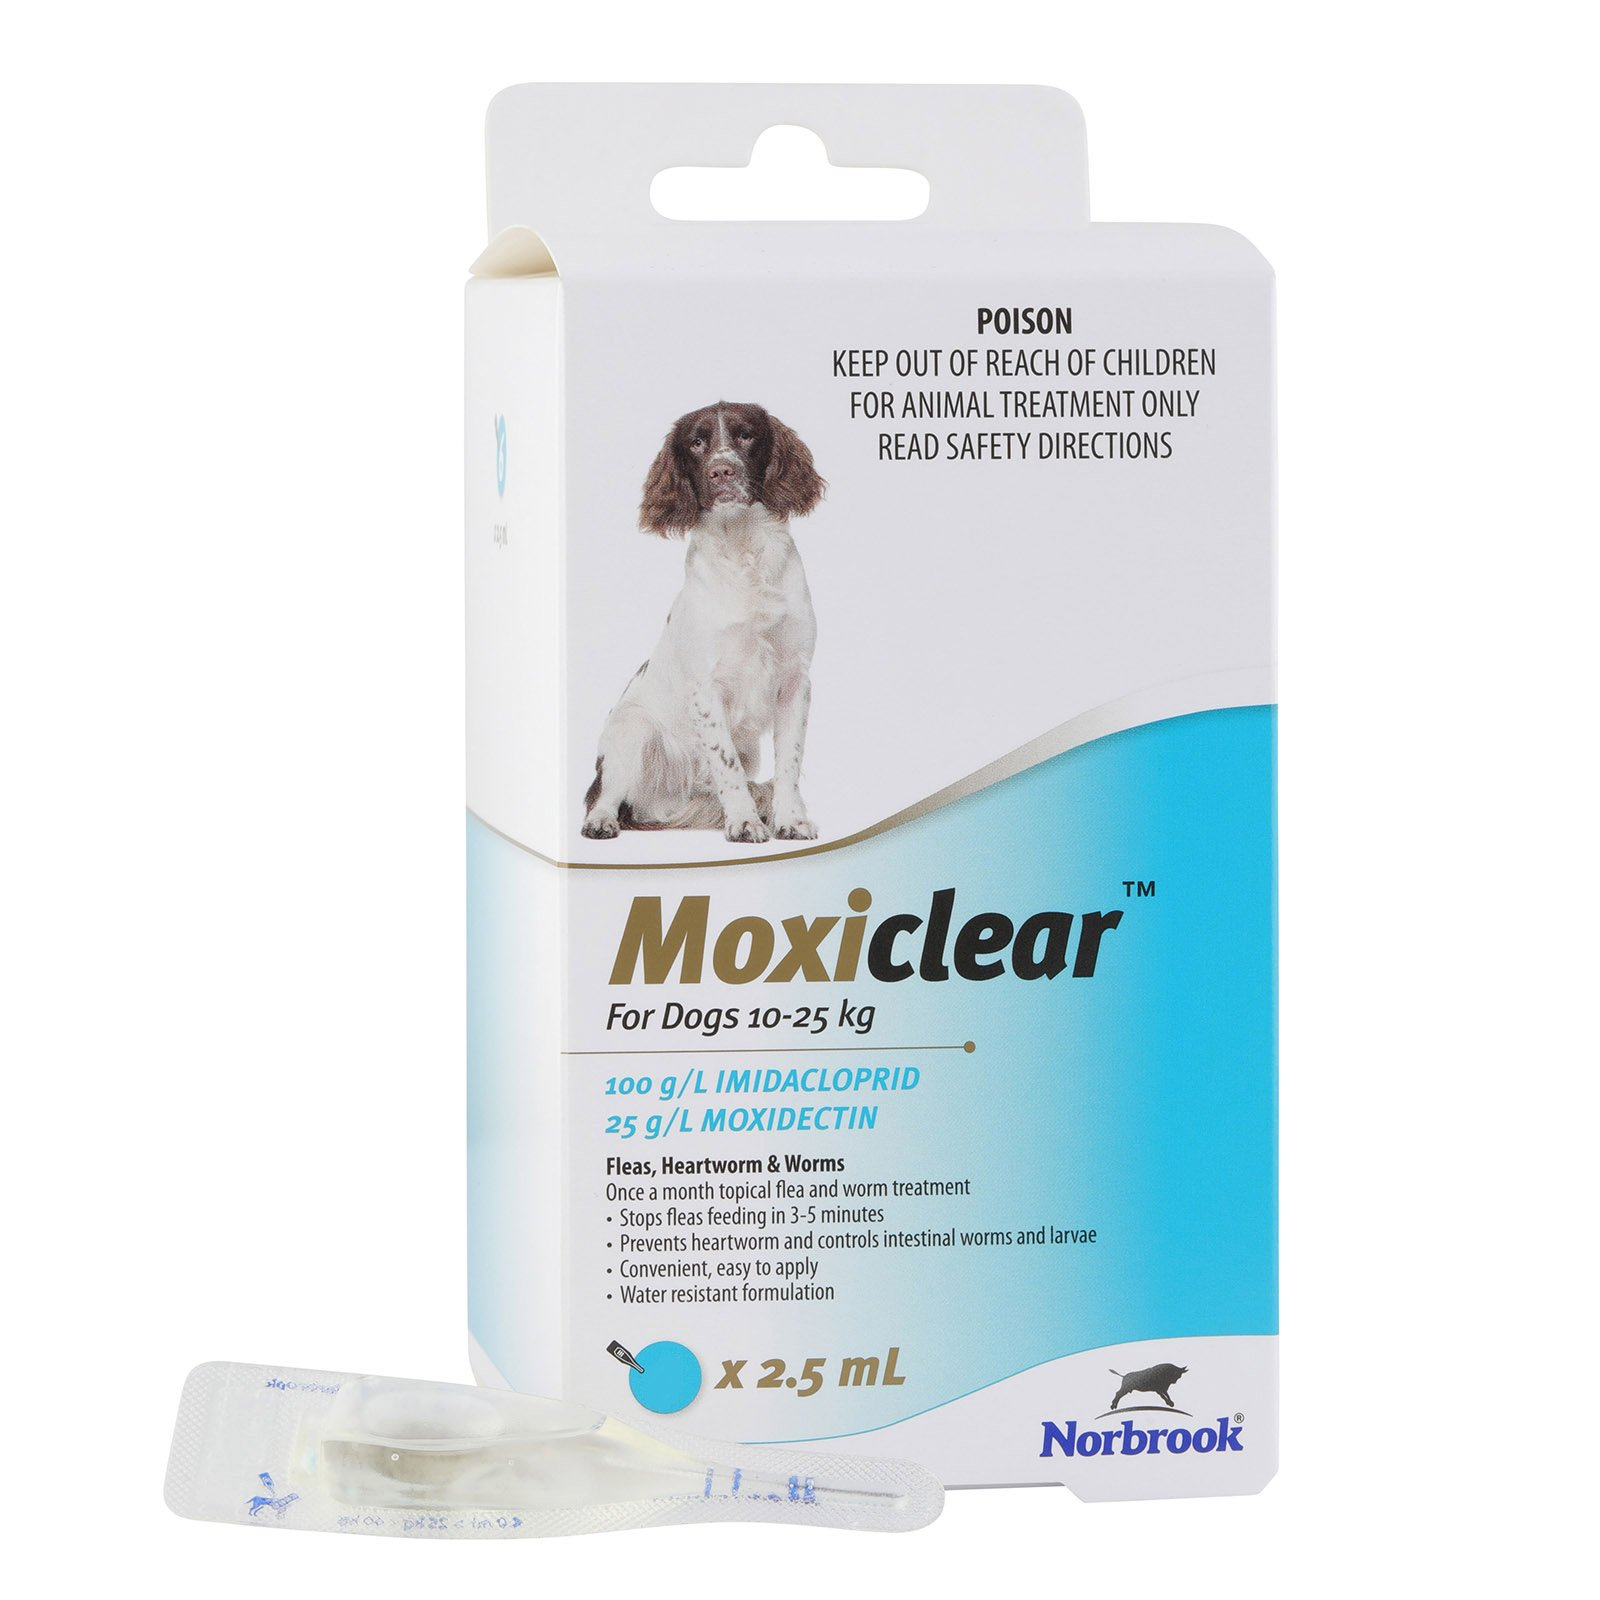 636996662555012575Moxiclear-for-Dogs-10-25kg-blue.jpg